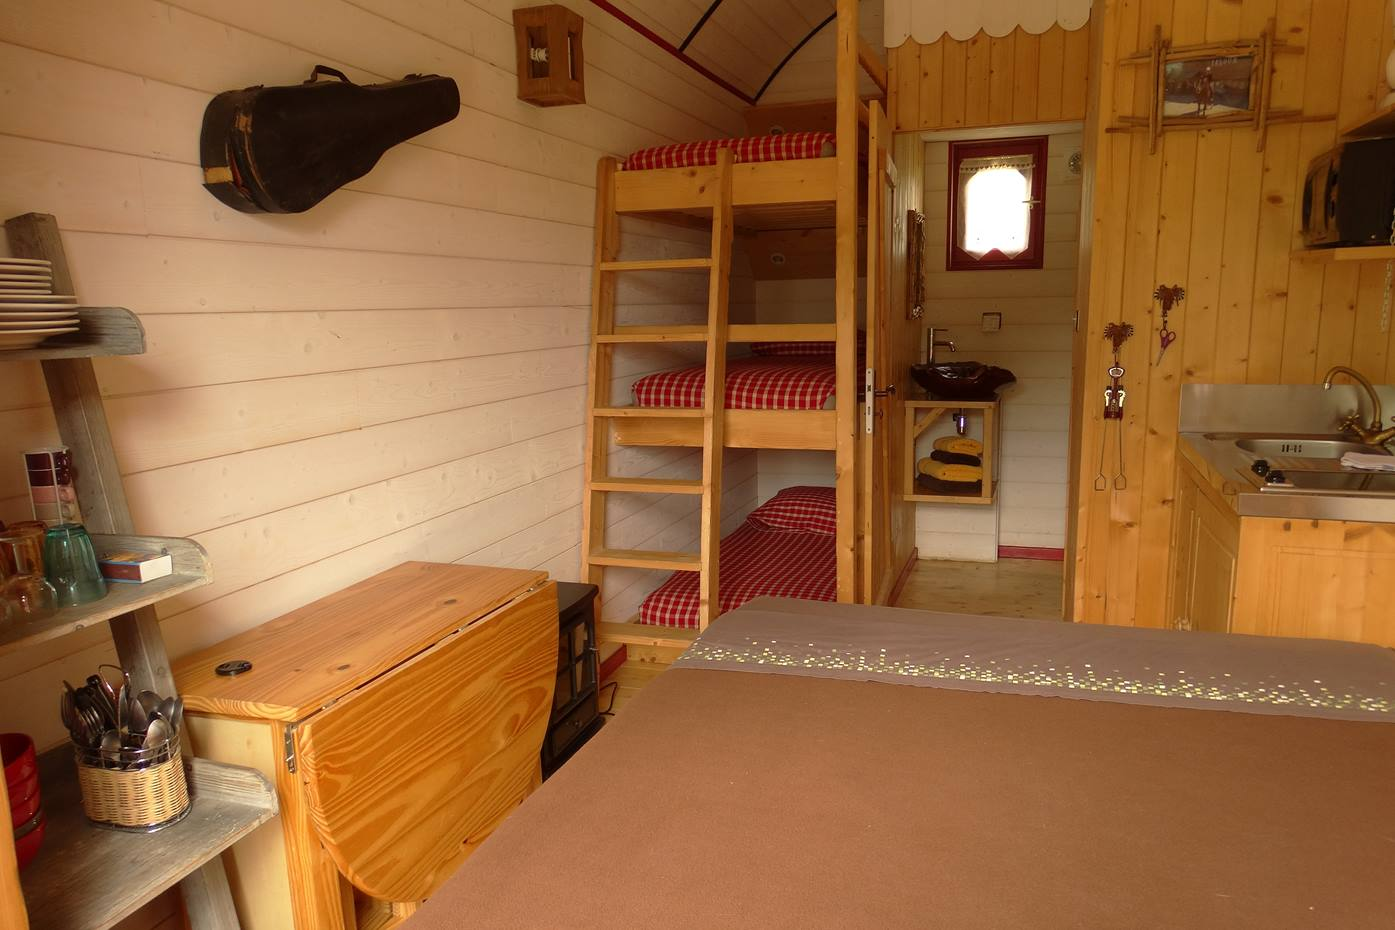 Interior layout of our unusual accommodations